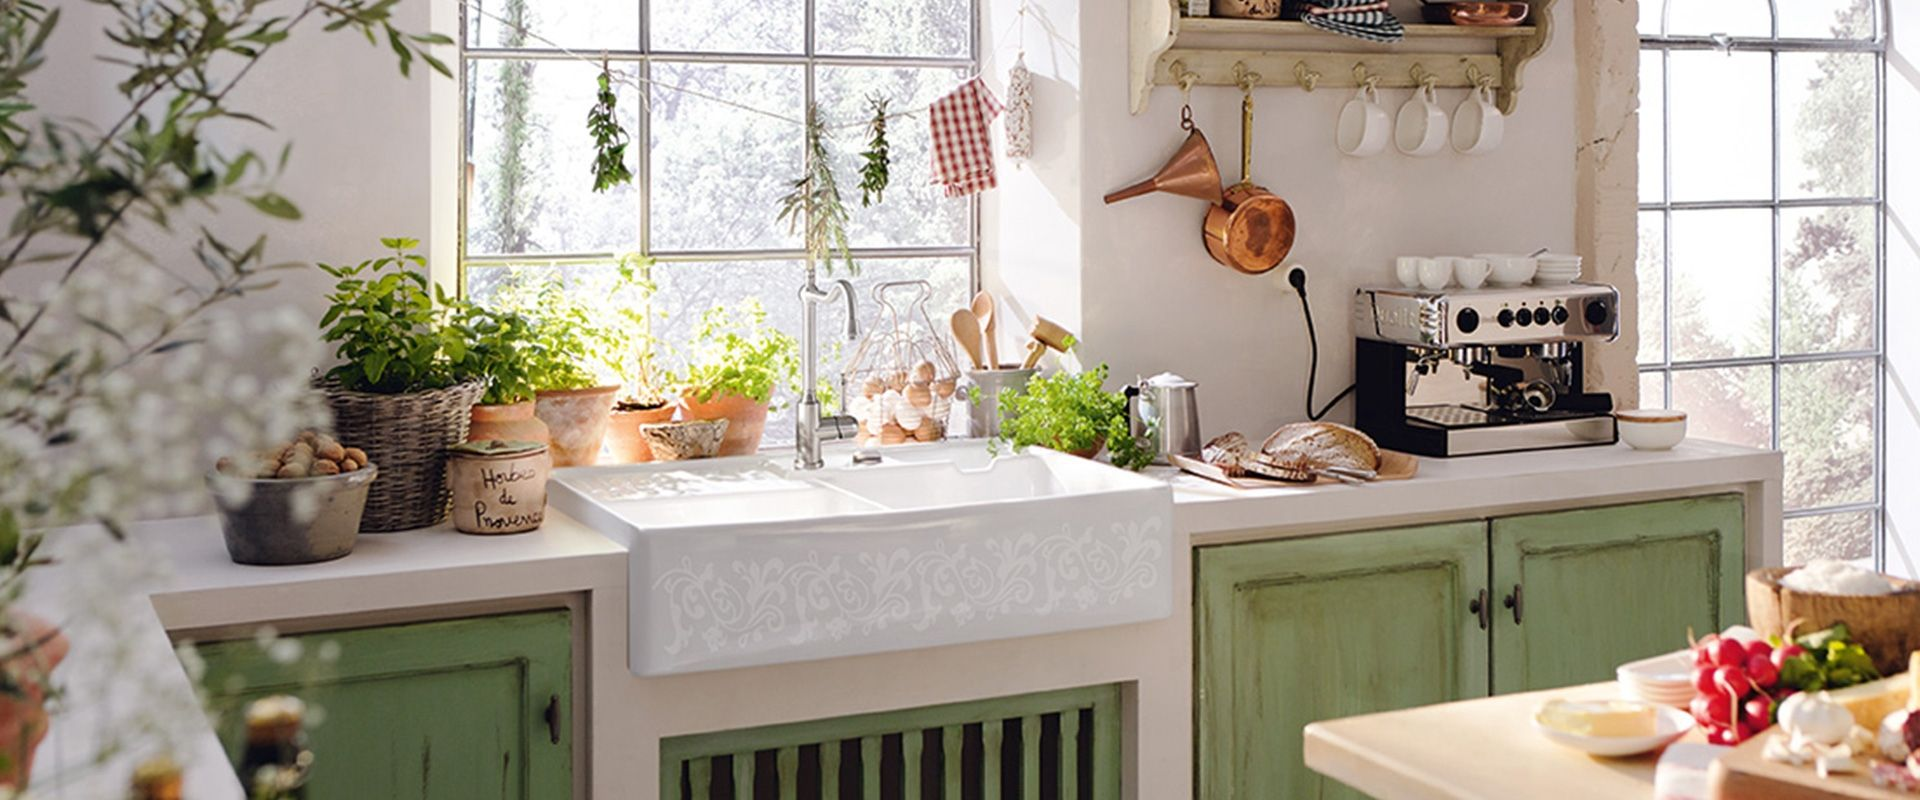 Villeroy And Boch Farm Sink Country style kitchen, Sink